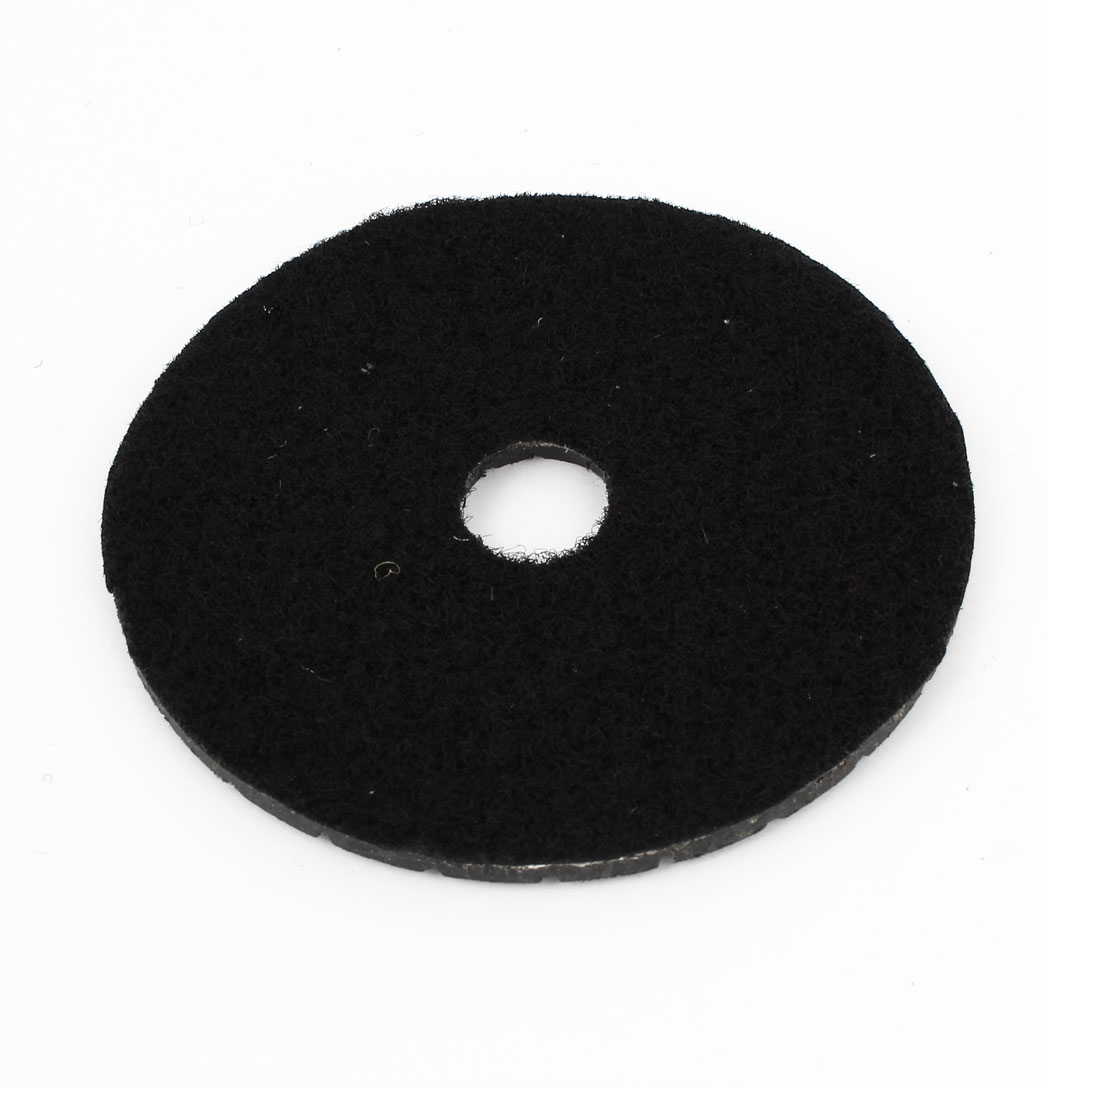 "4"" Dia 50 Grit Black Diamond Polishing Pad for Concrete Granite"